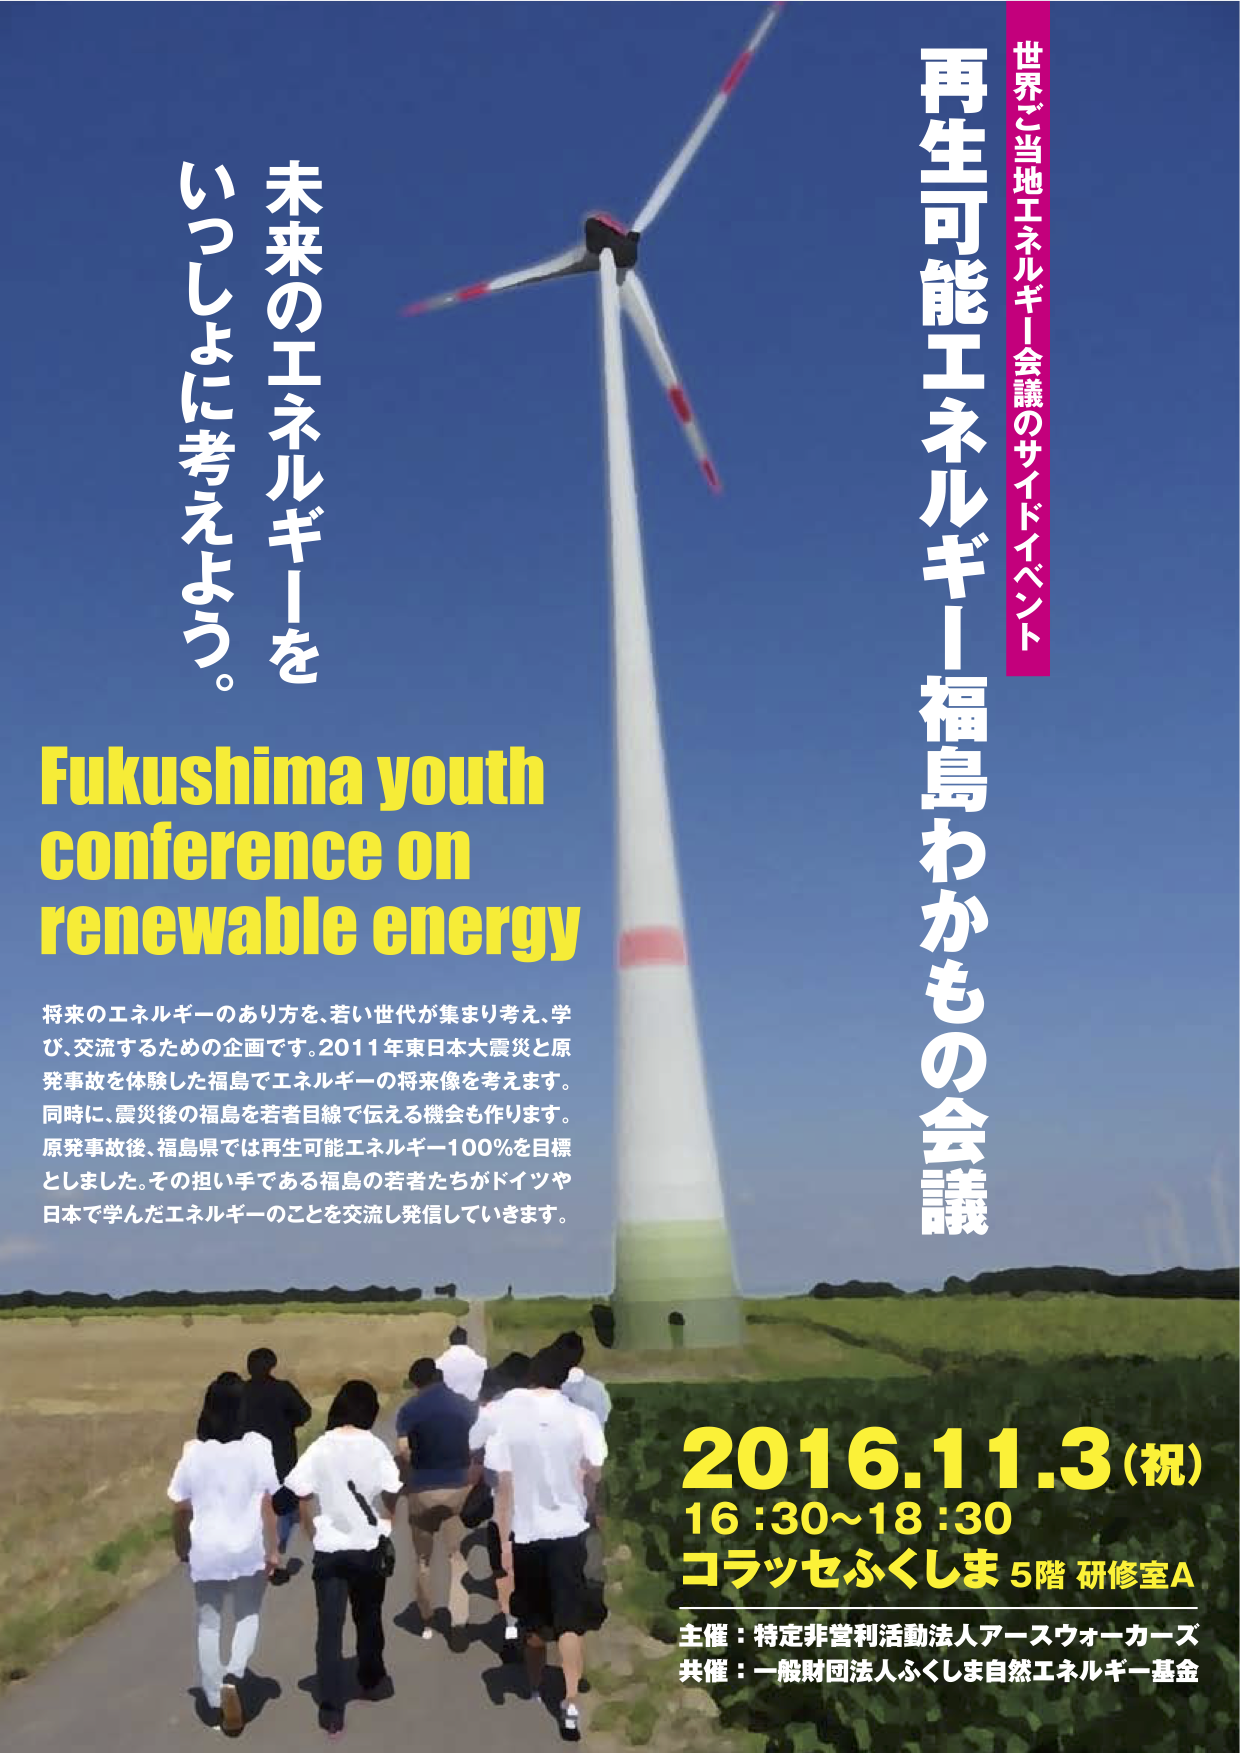 http://www.wcpc2016.jp/wp-content/uploads/2016/10/SideEvent.png